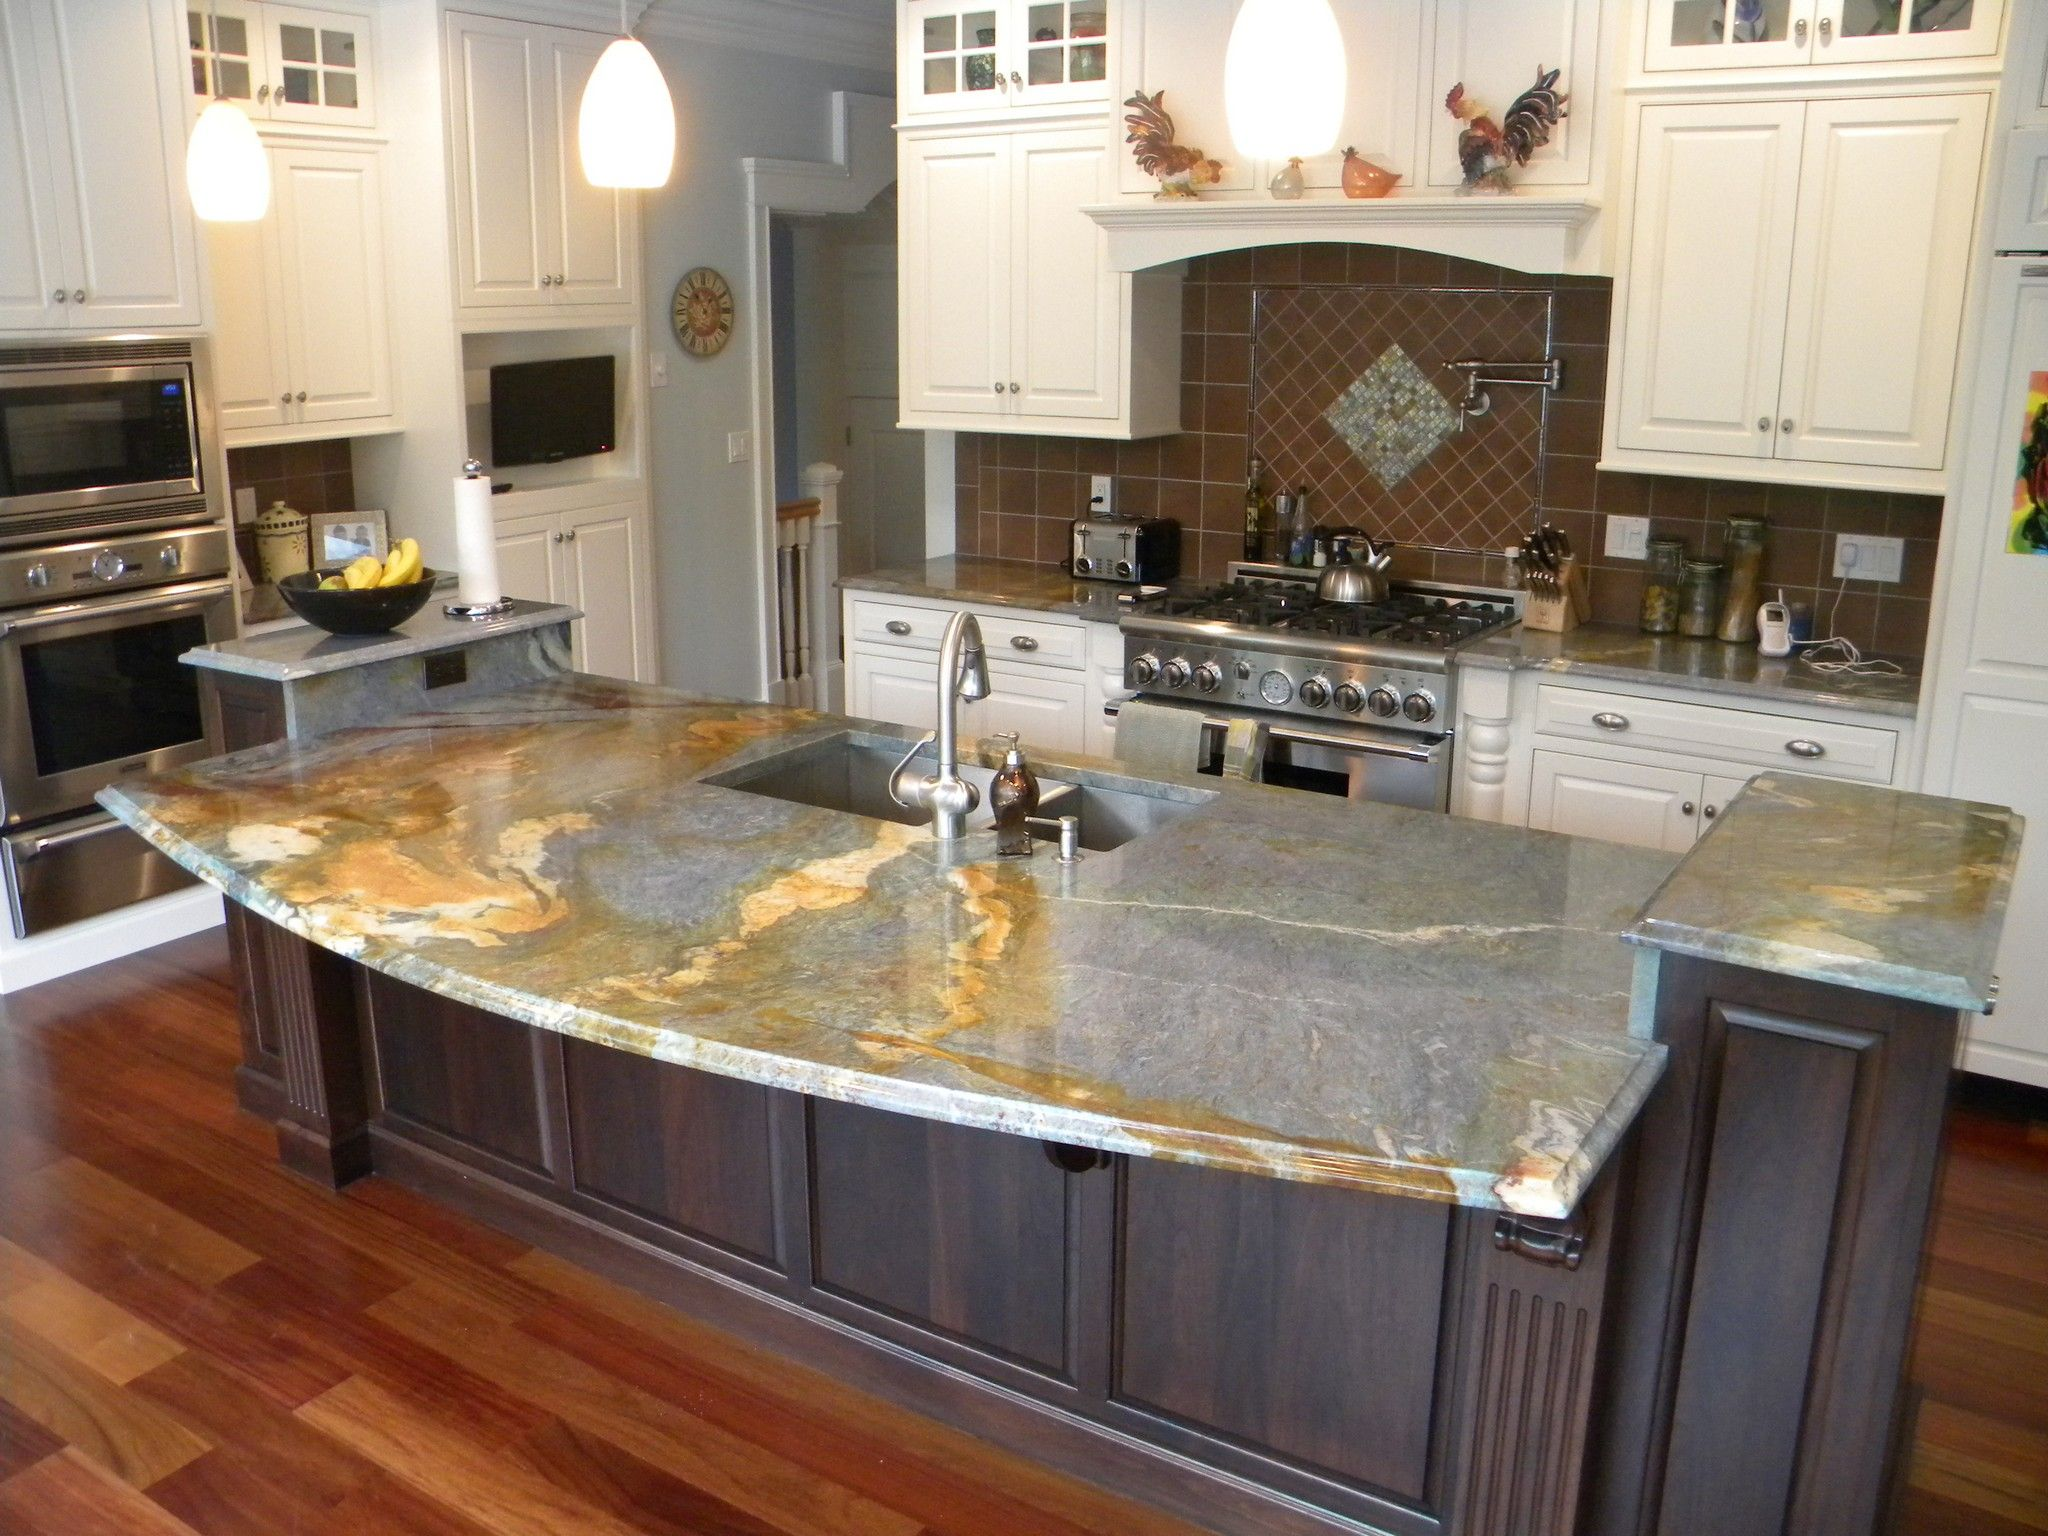 Kitchen Sinks For Granite Countertops Waterfall Countertop Granite Countertops Marble Countertops